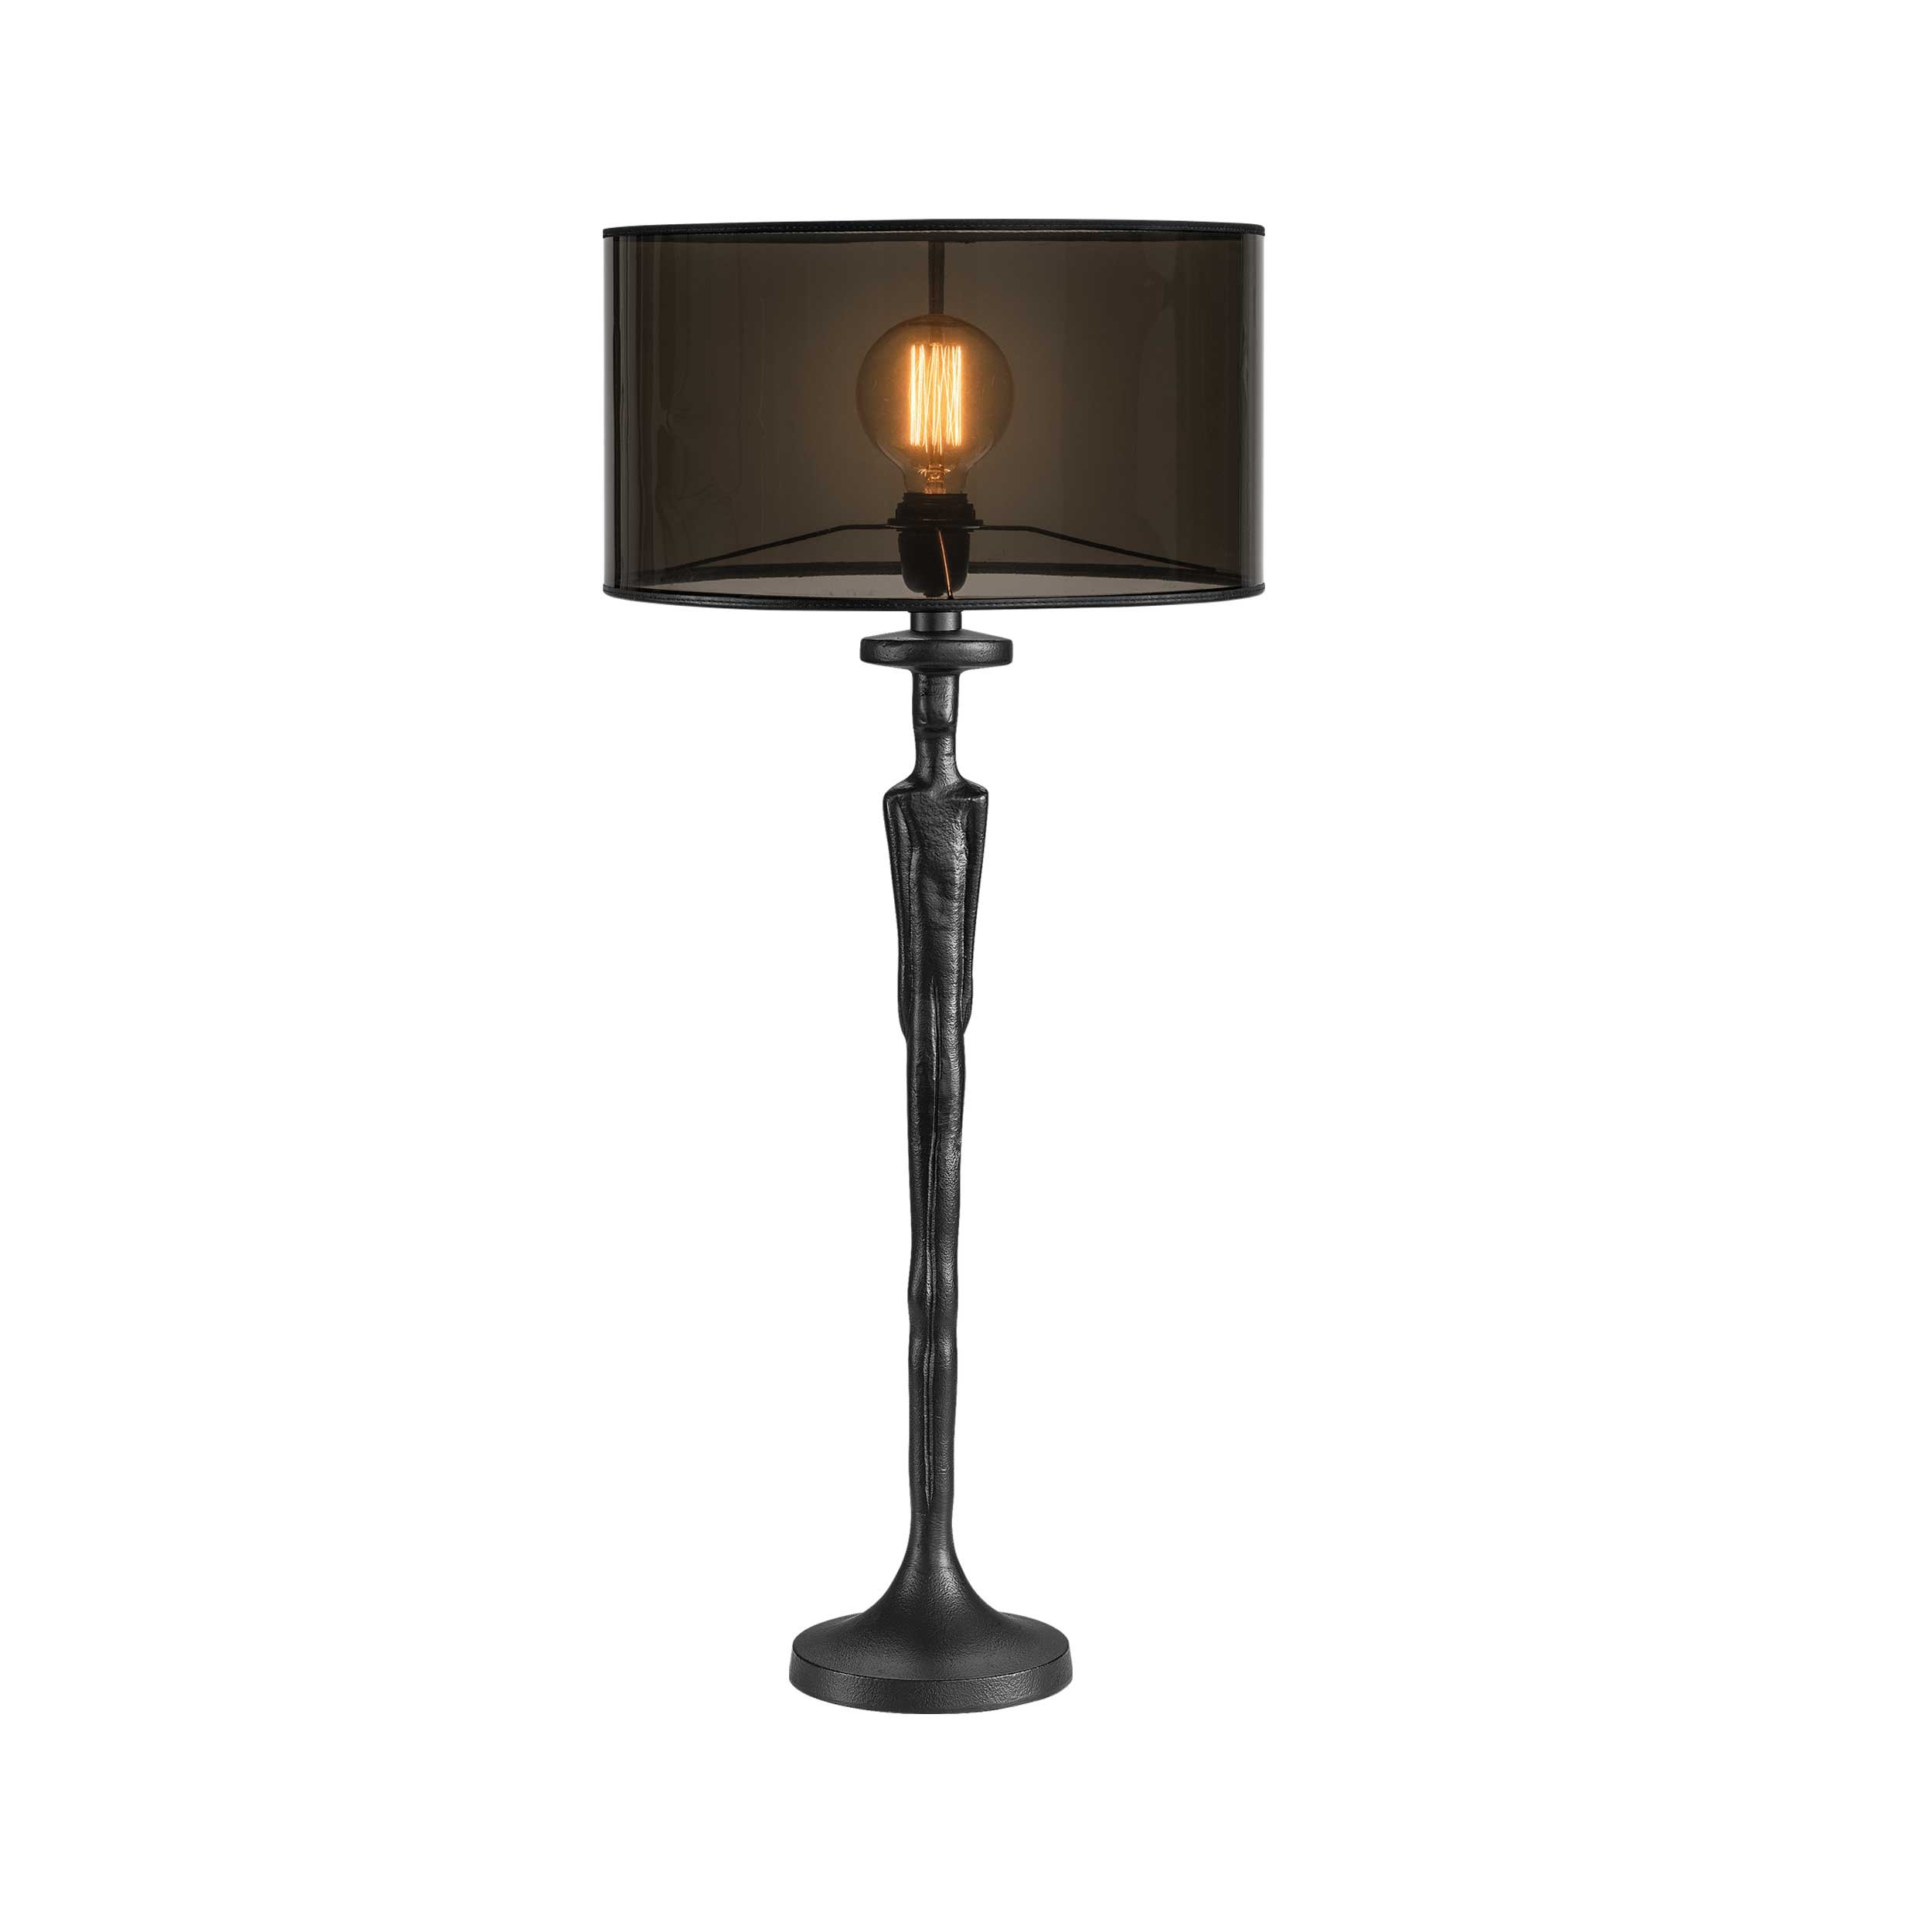 ADRIANO table lamp black